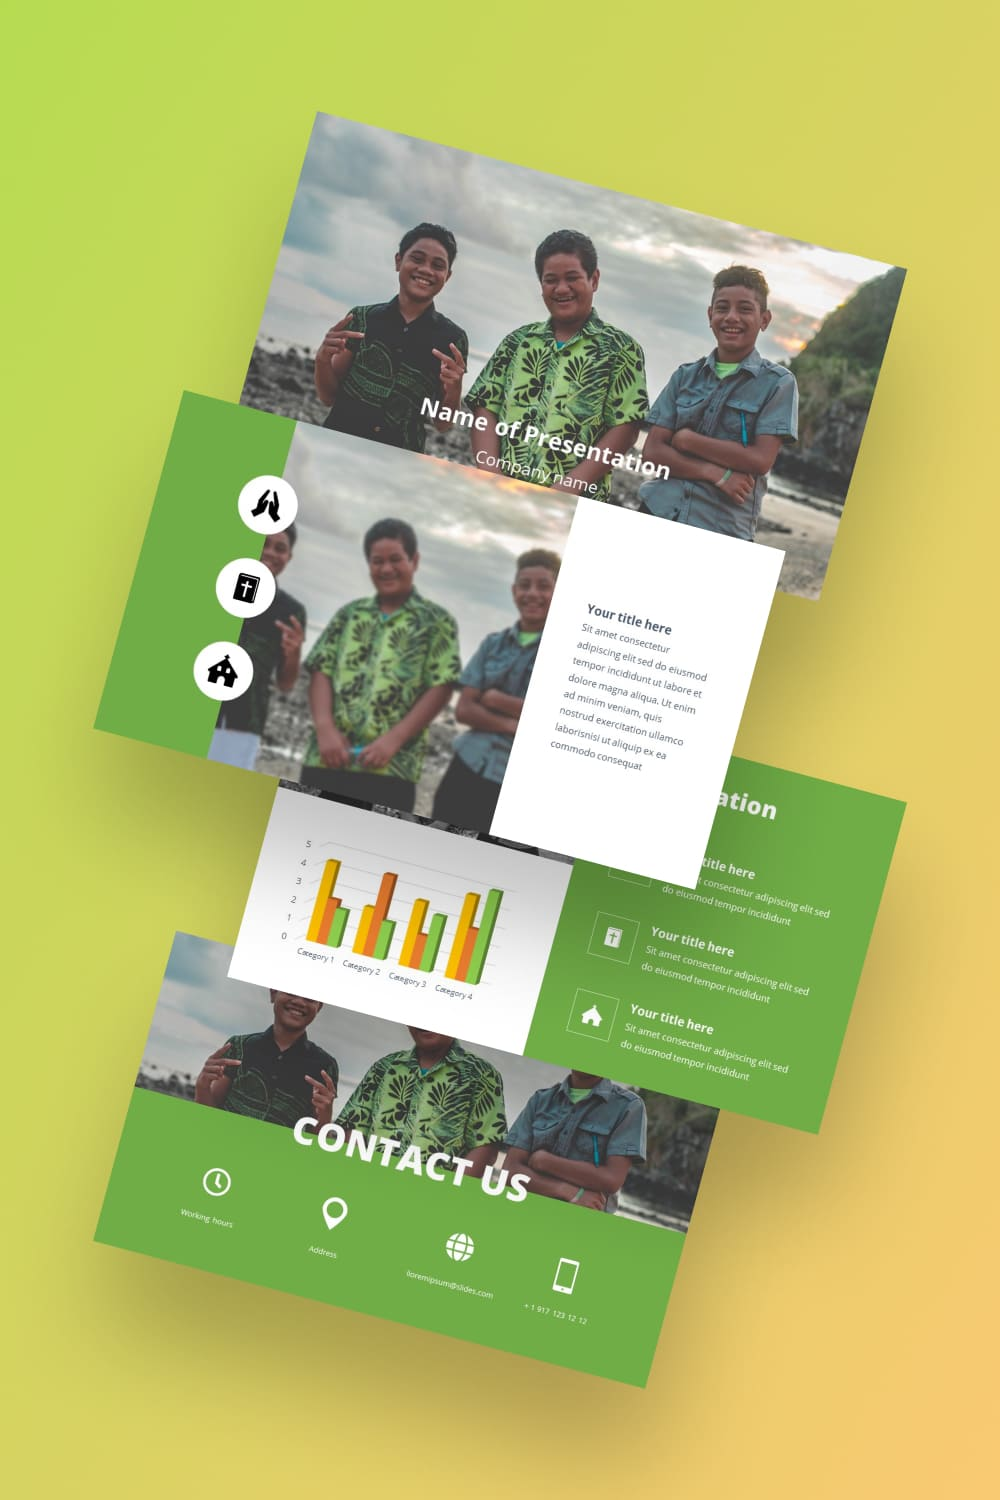 Samoan Free Worship Songs Powerpoint Background. Eco friendly green template. He will calmly suit different topics.